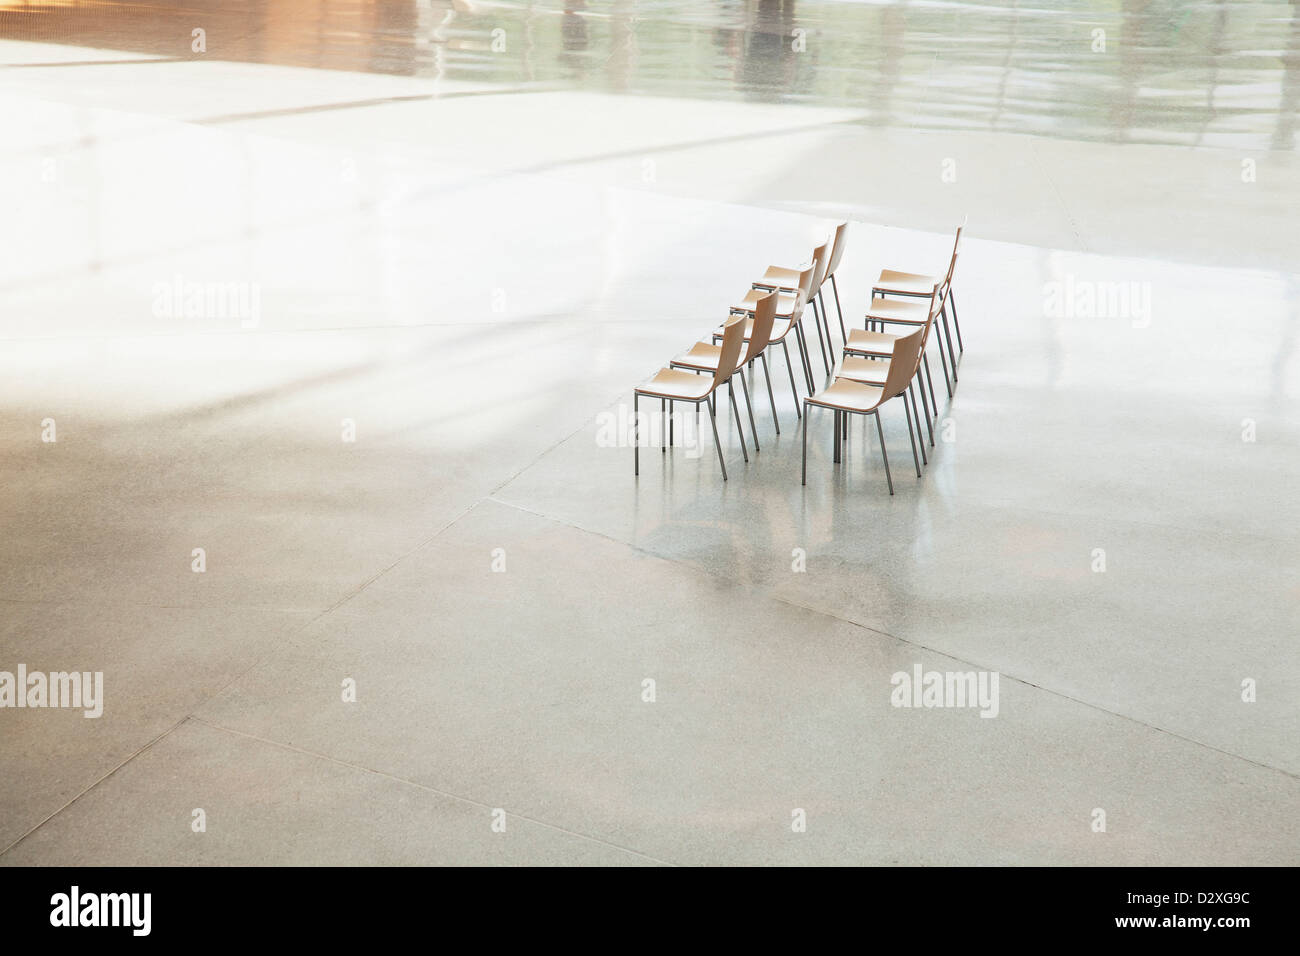 Chairs in a row in empty lobby - Stock Image